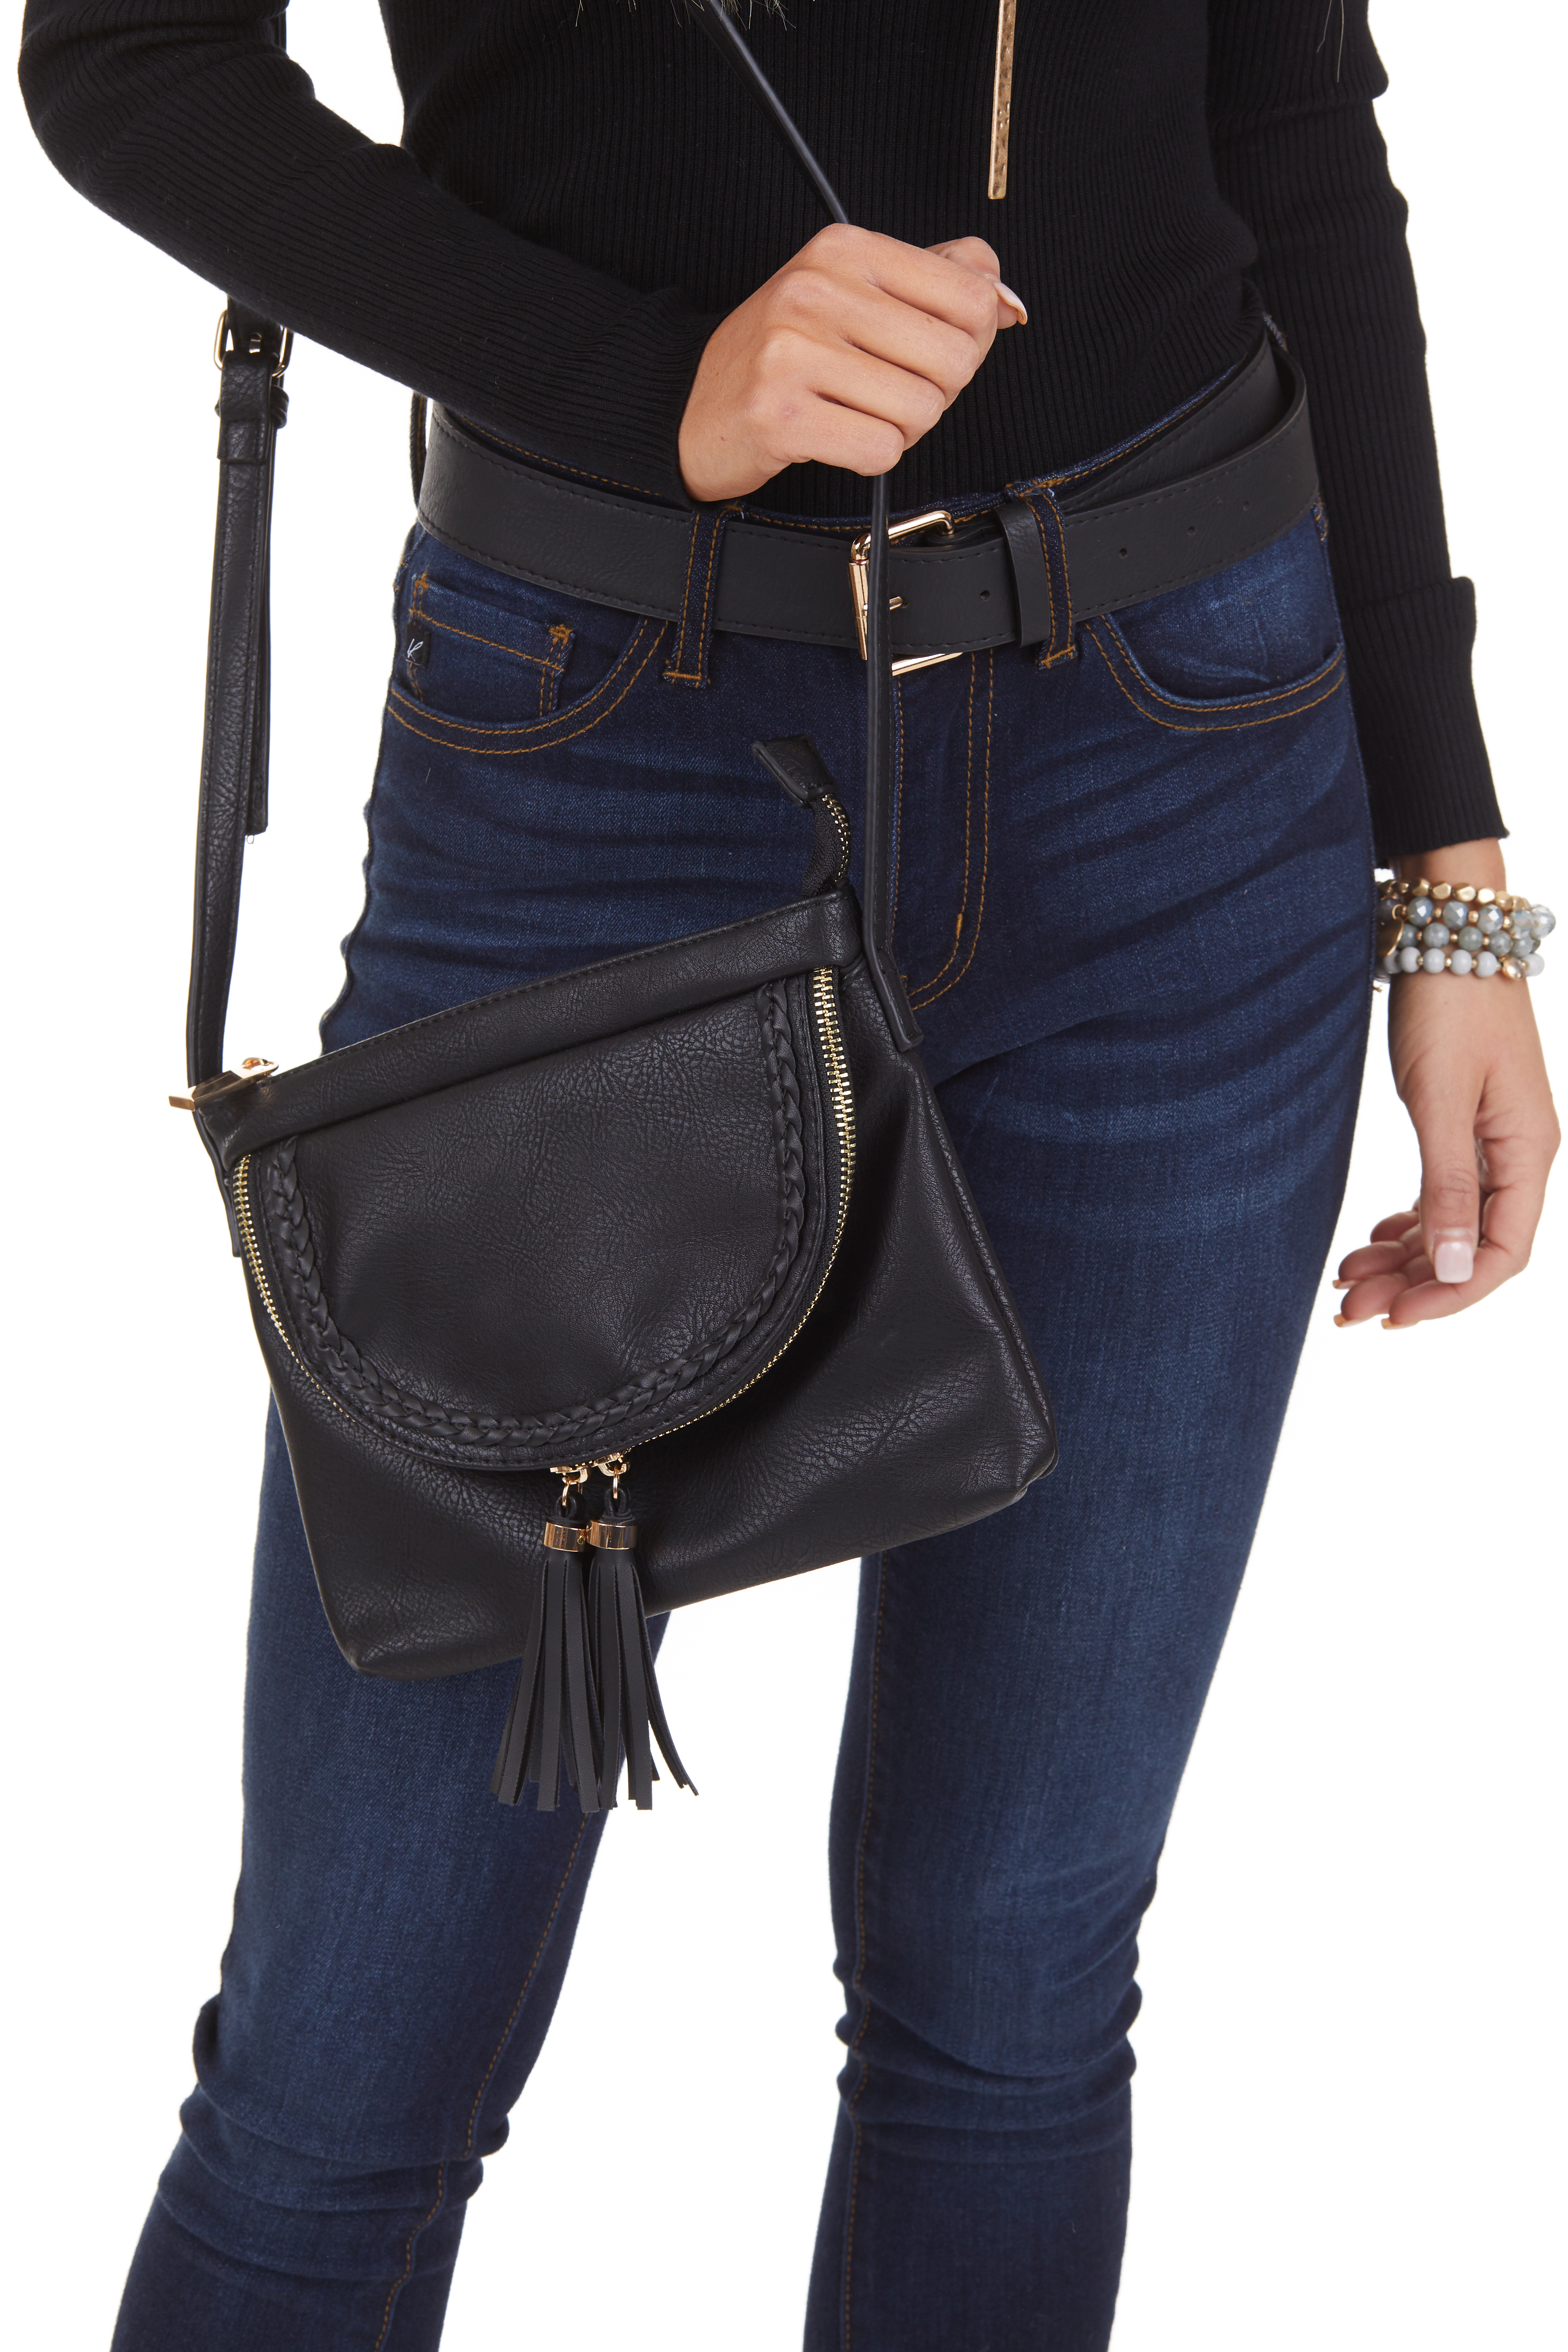 Black Faux Leather Cross Body Bag with Braided Details